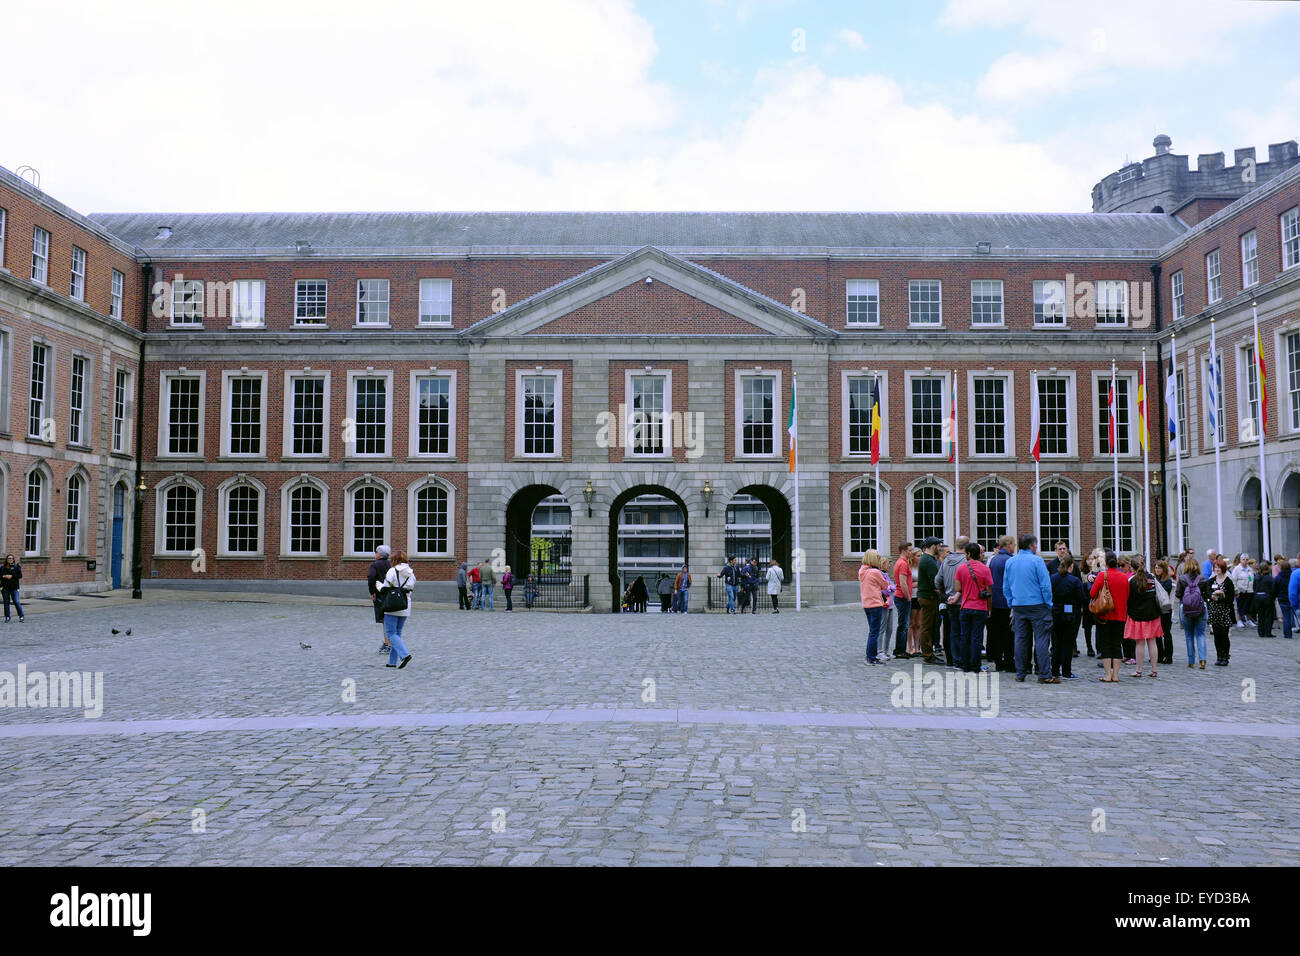 State Apartments in the Dublin Castle upper yard. - Stock Image